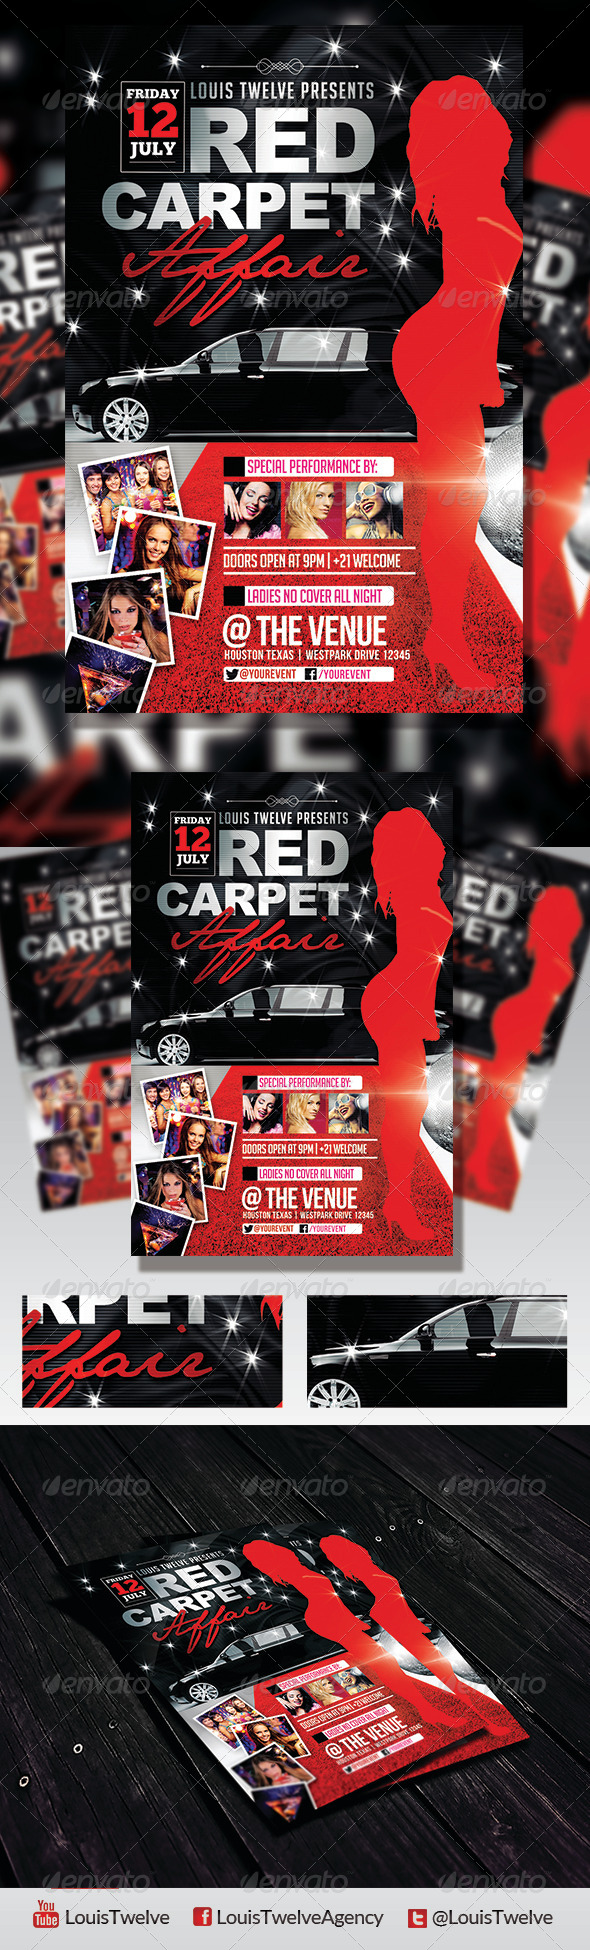 Red Carpet Affair 3 Flyer Template Graphicriver